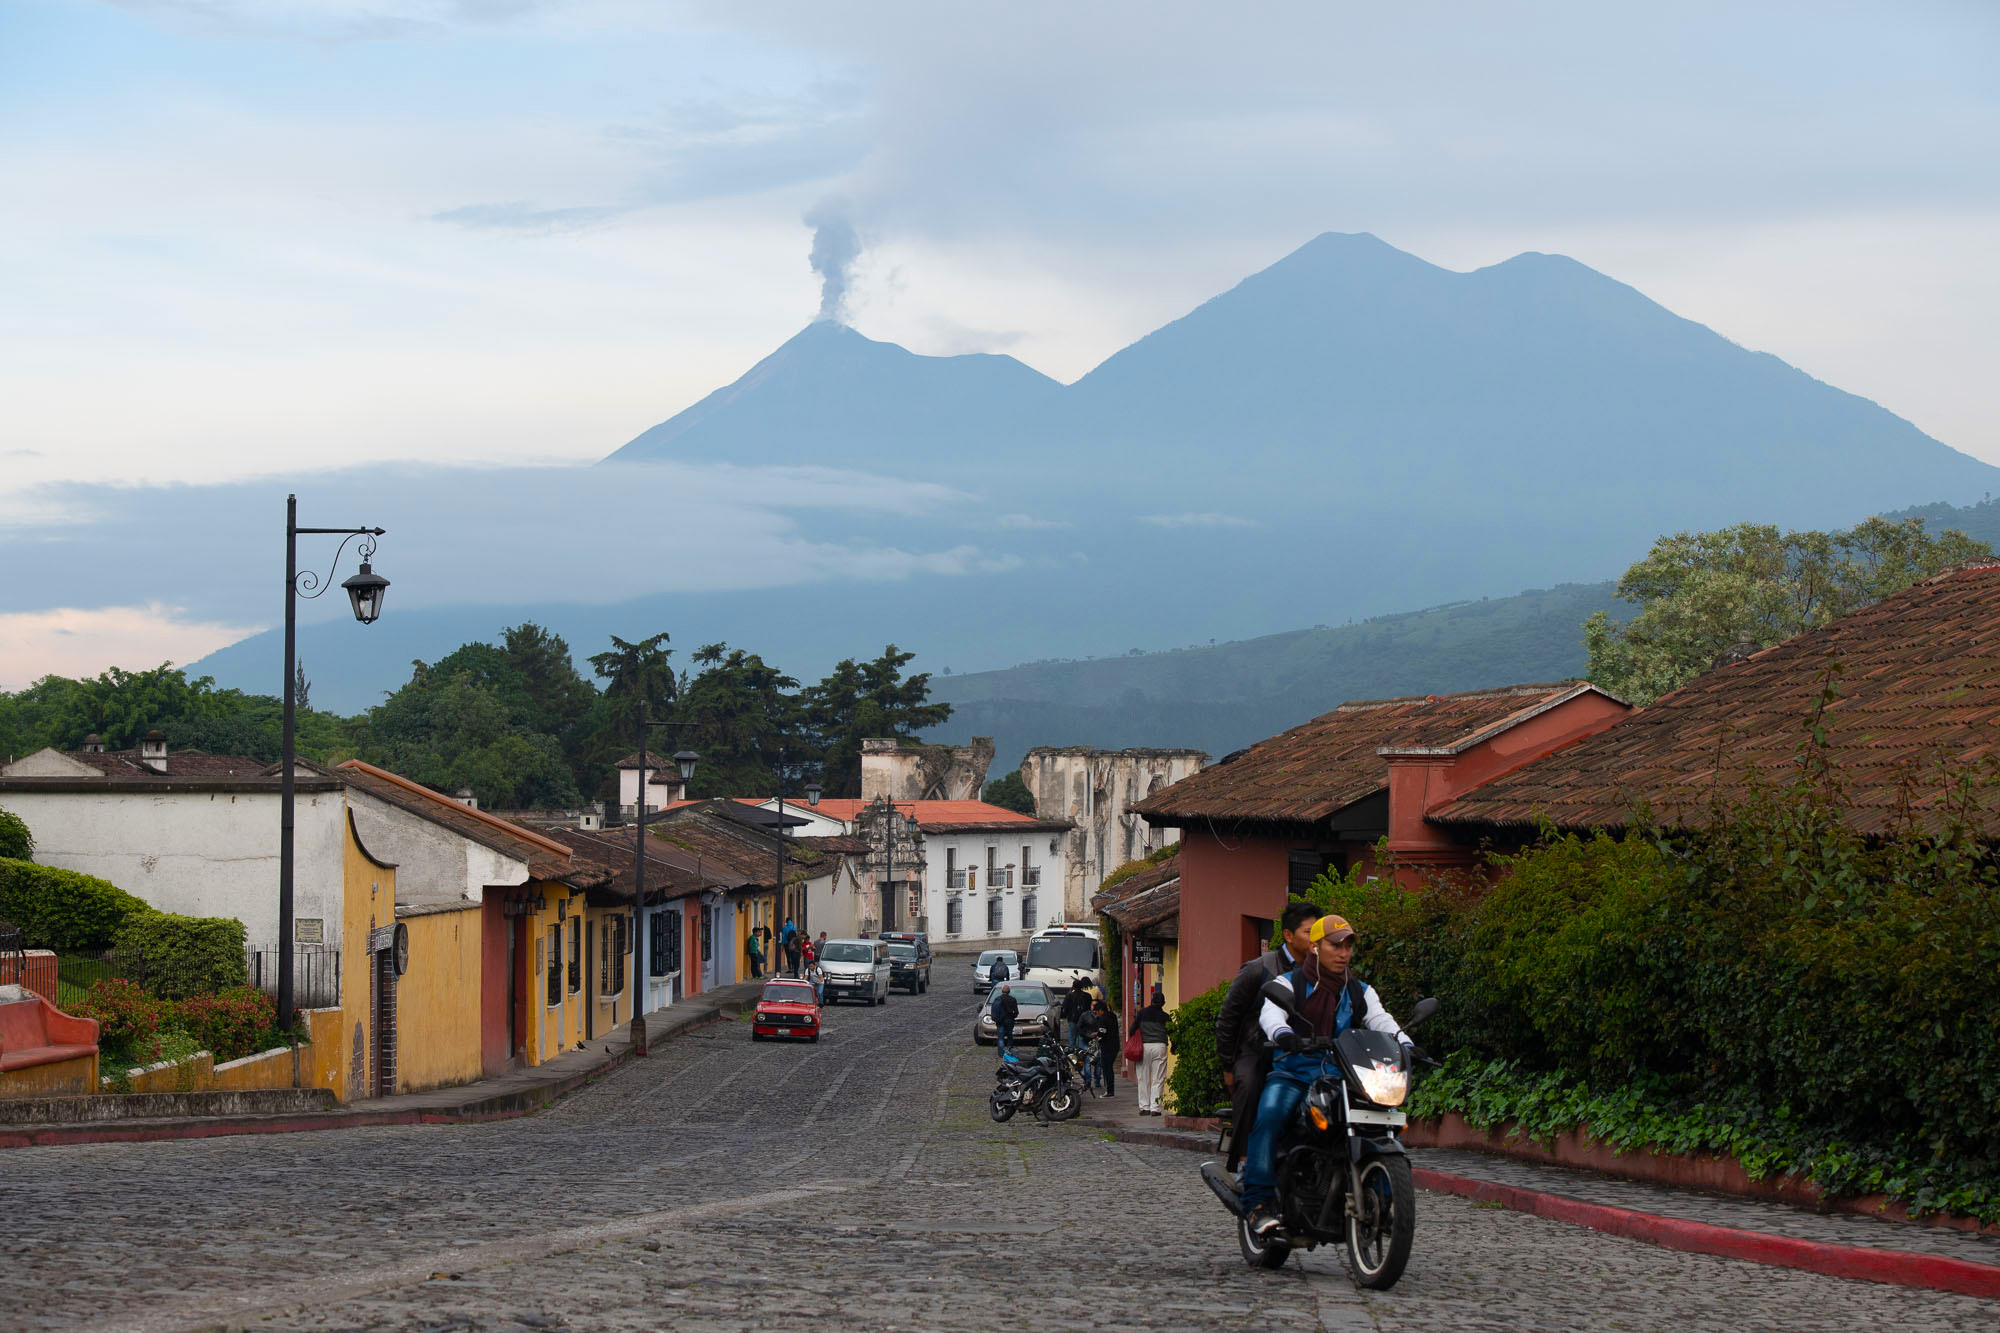 Volcano Fuego recently erupted forcing thousands of distressed residents to flee.